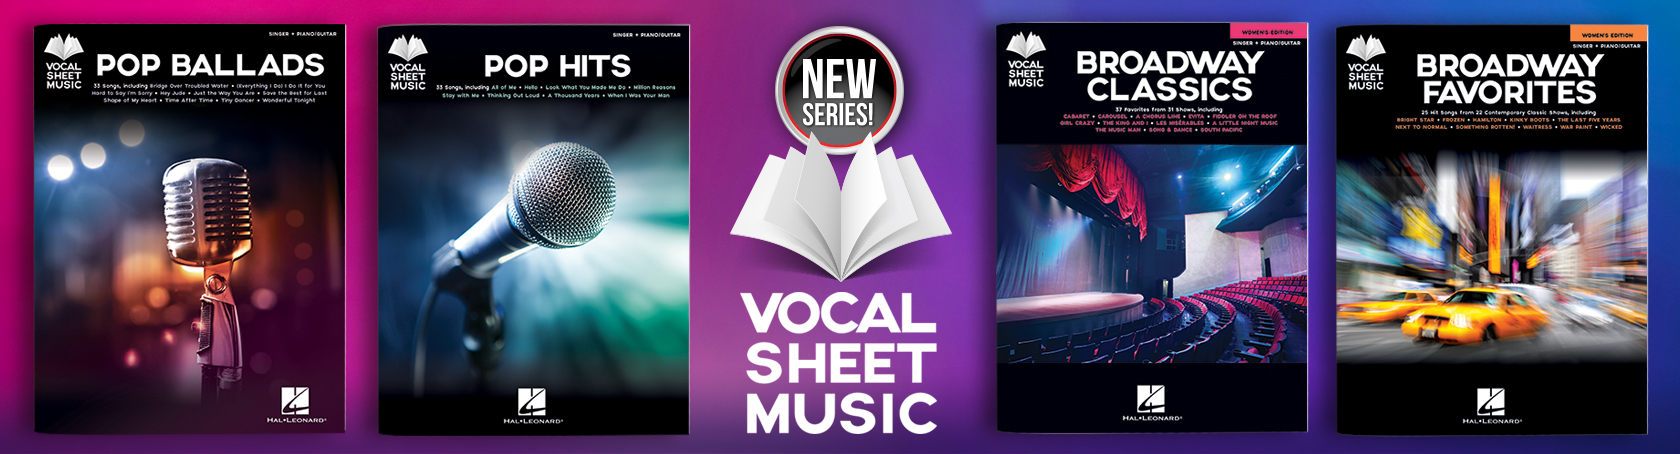 Vocal Sheet Music - New Series!